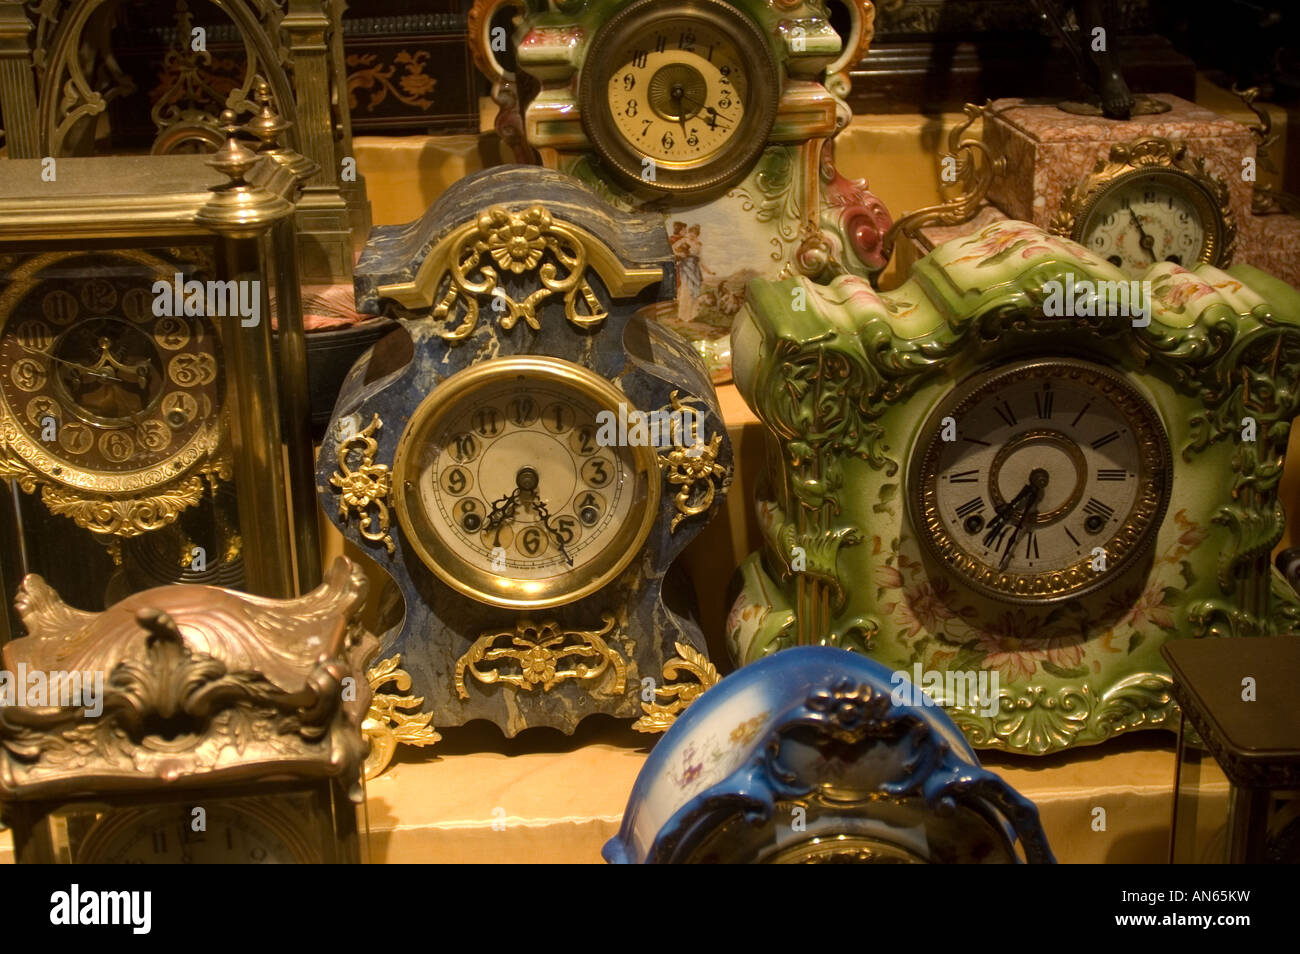 A collection of rococo clocks in a store window in the NYC neighborhood of Chelsea - Stock Image